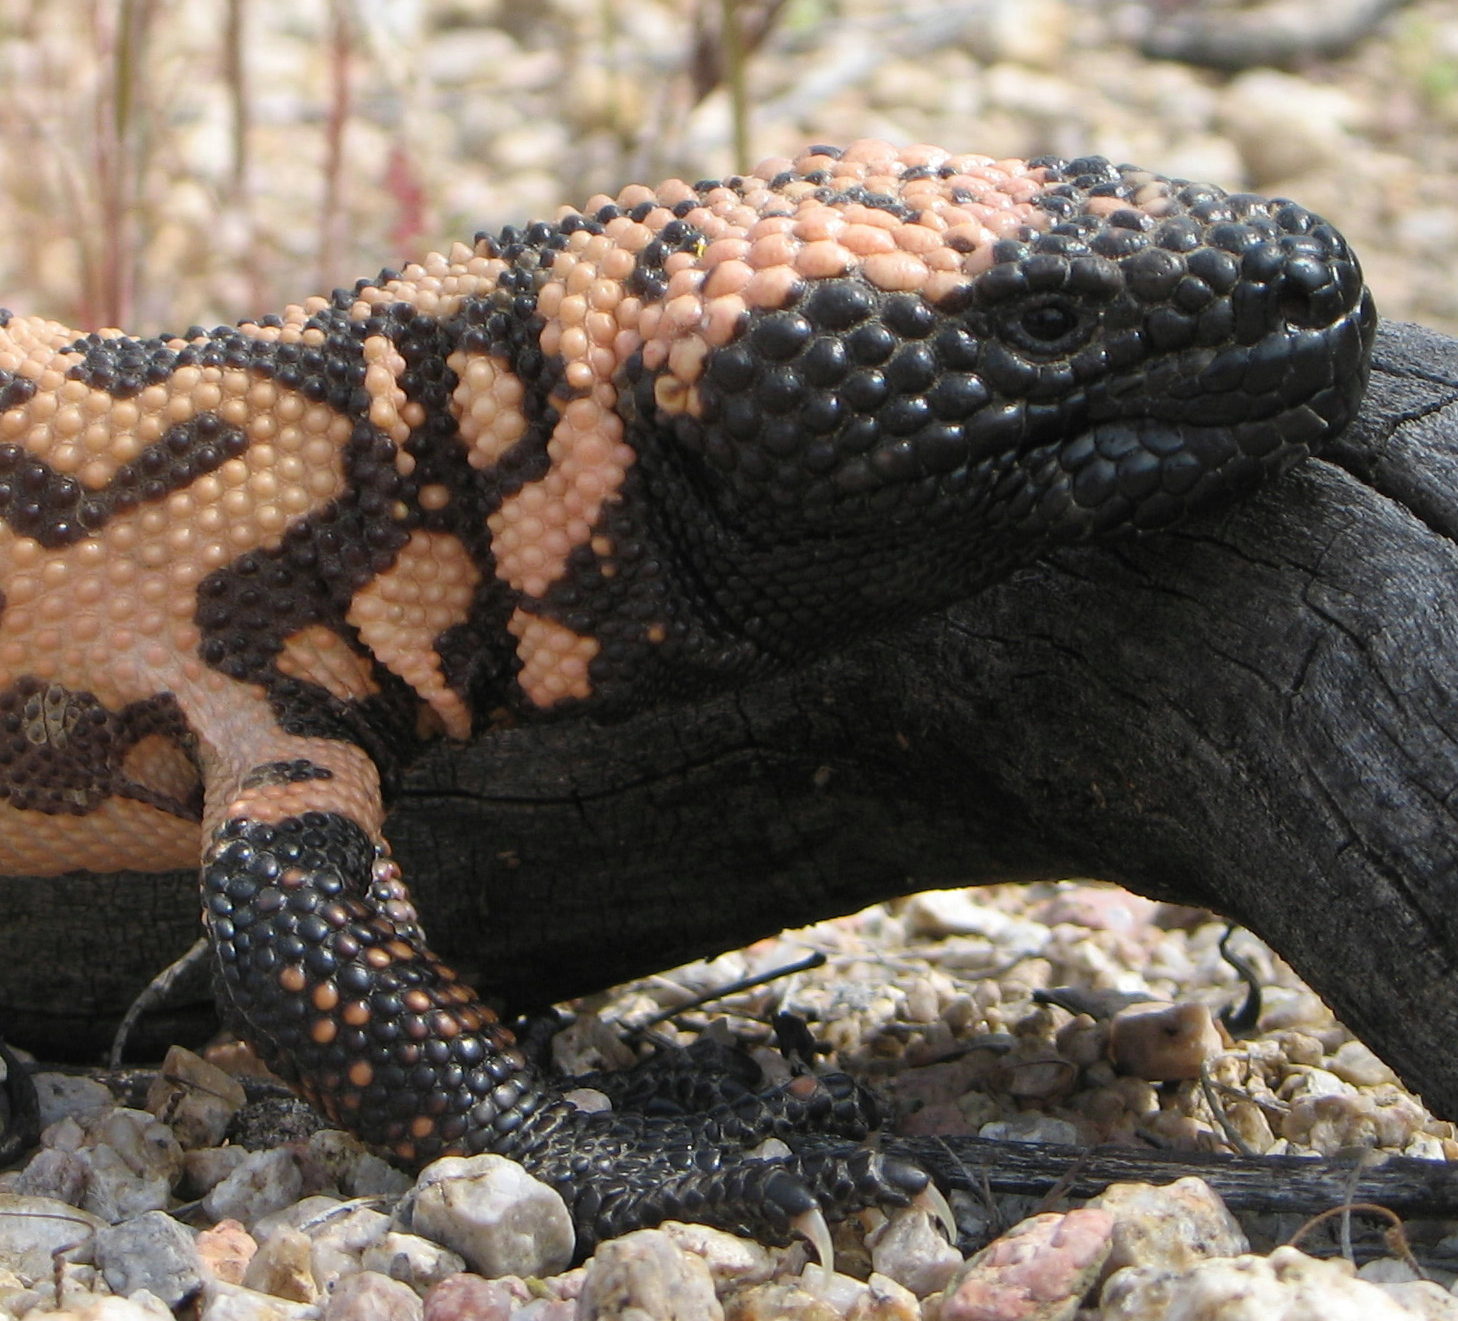 live gila monster in the power of poison